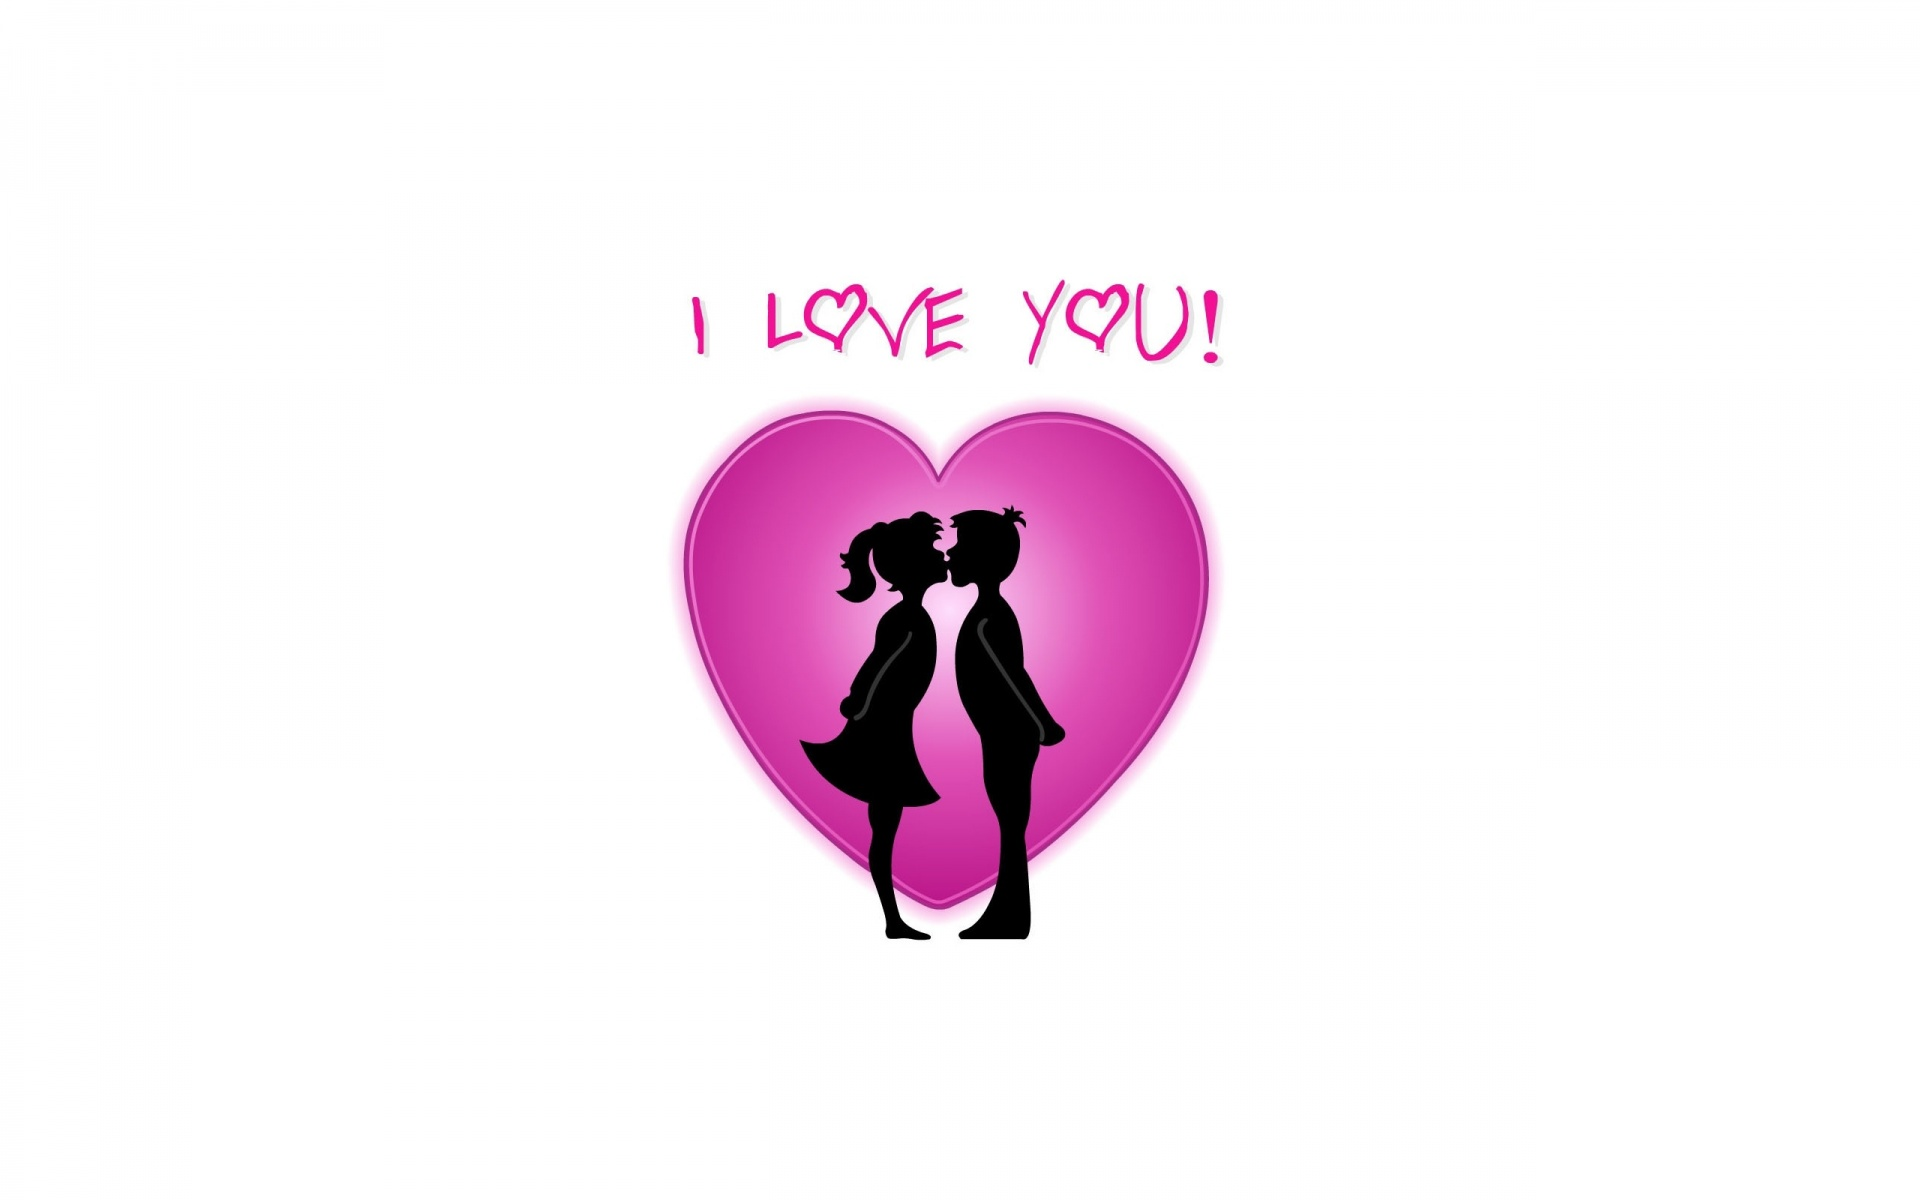 Love You Baby Hd Wallpaper : I Love You Wallpapers HD A19 - HD Desktop Wallpapers 4k HD